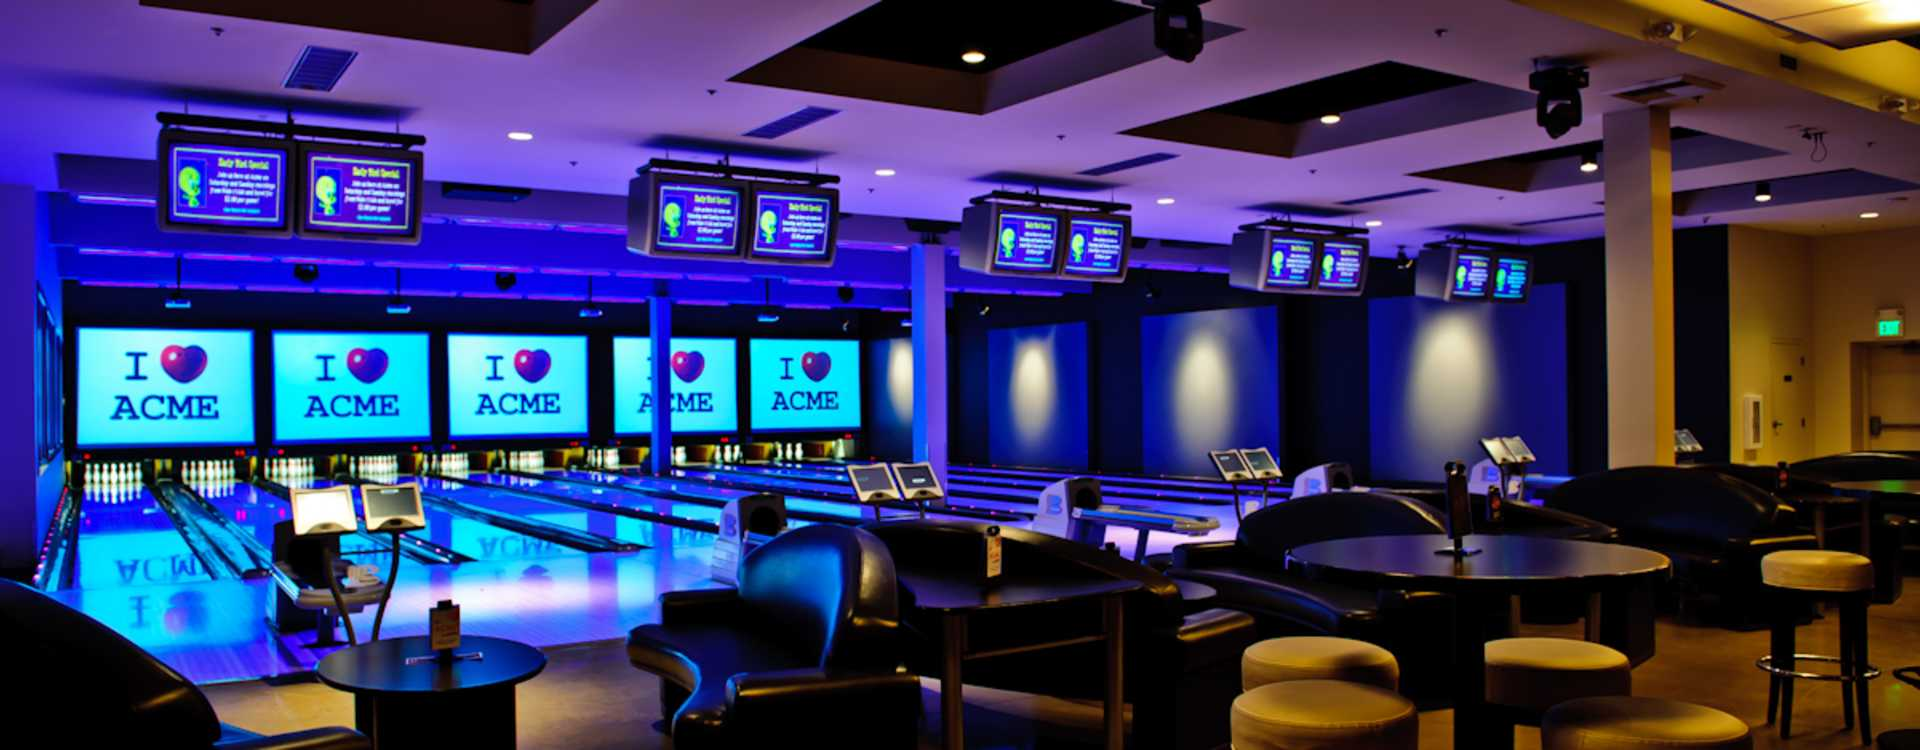 meeting-facility-ACME_Bowling__Billiards_and_Events_Meeting_Facility-4.jpg